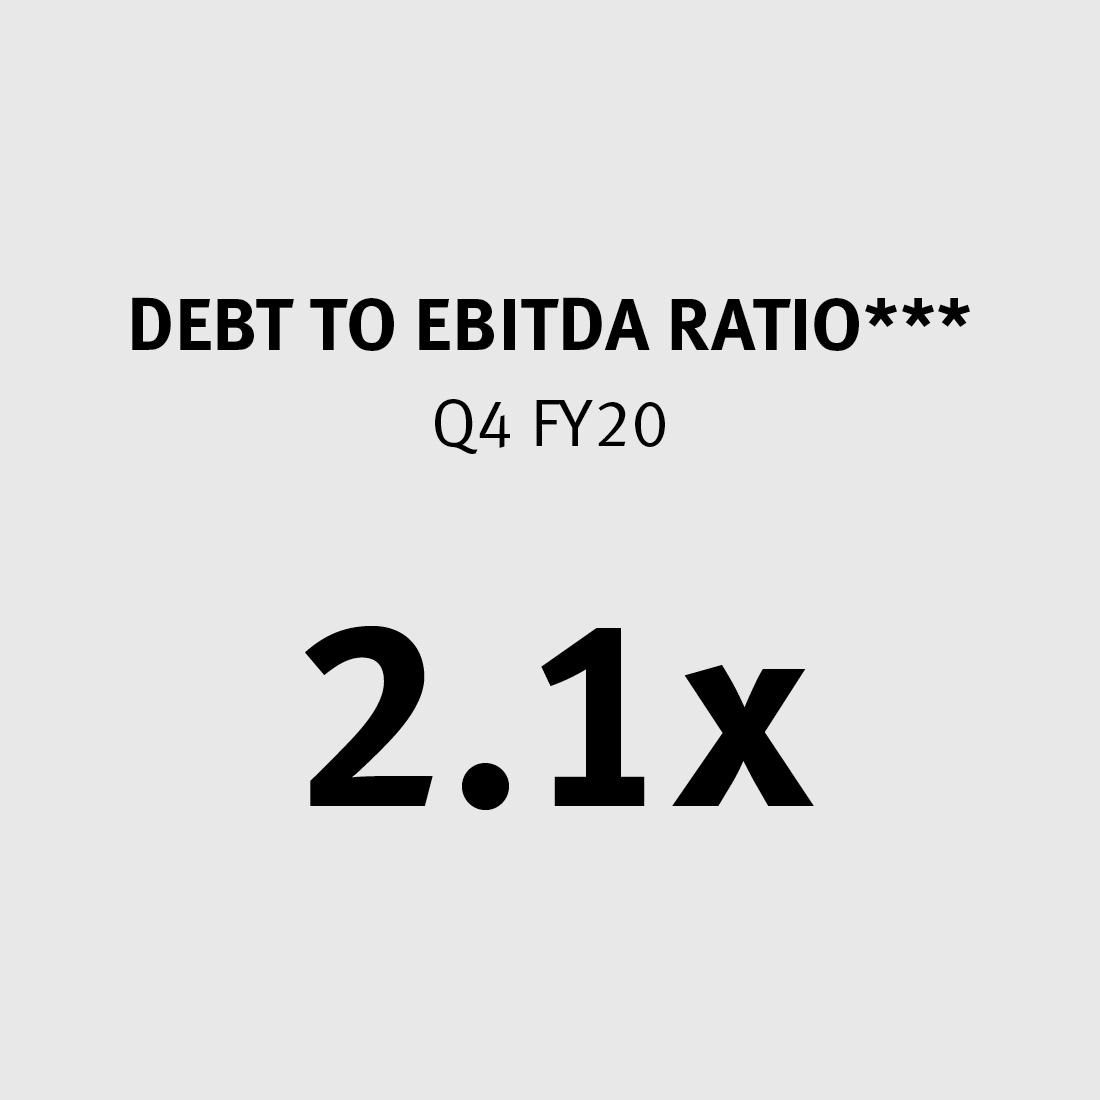 Debt to EBITDA Ratio 2.1x